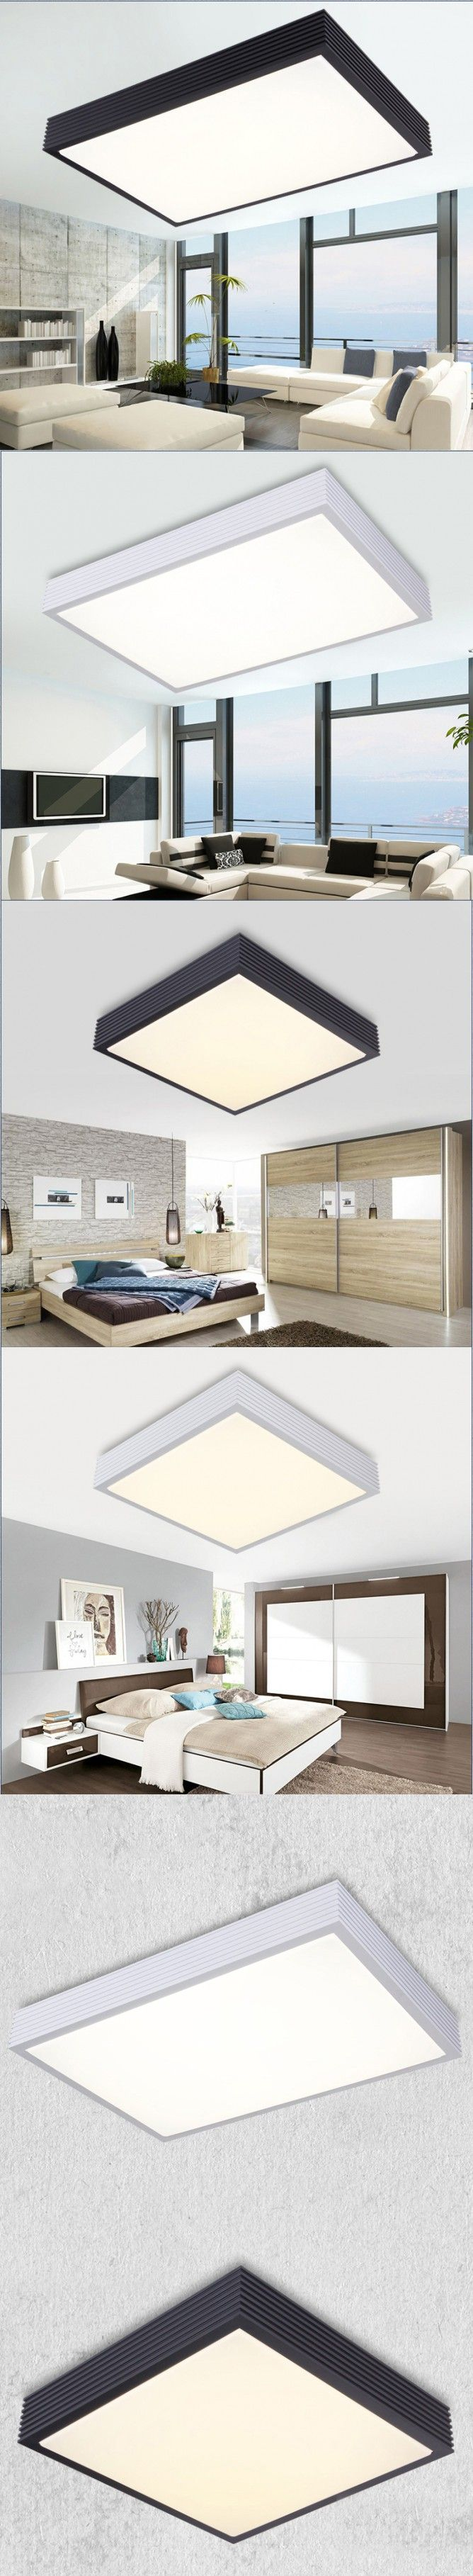 Indoor decorative led ceiling lights wall lamps china led ceiling - Modern Led Ceiling Lights Lamp For Living Room Bedroom Home Decoration Lighting Light Fixtures Abajur Lamparas De Techo